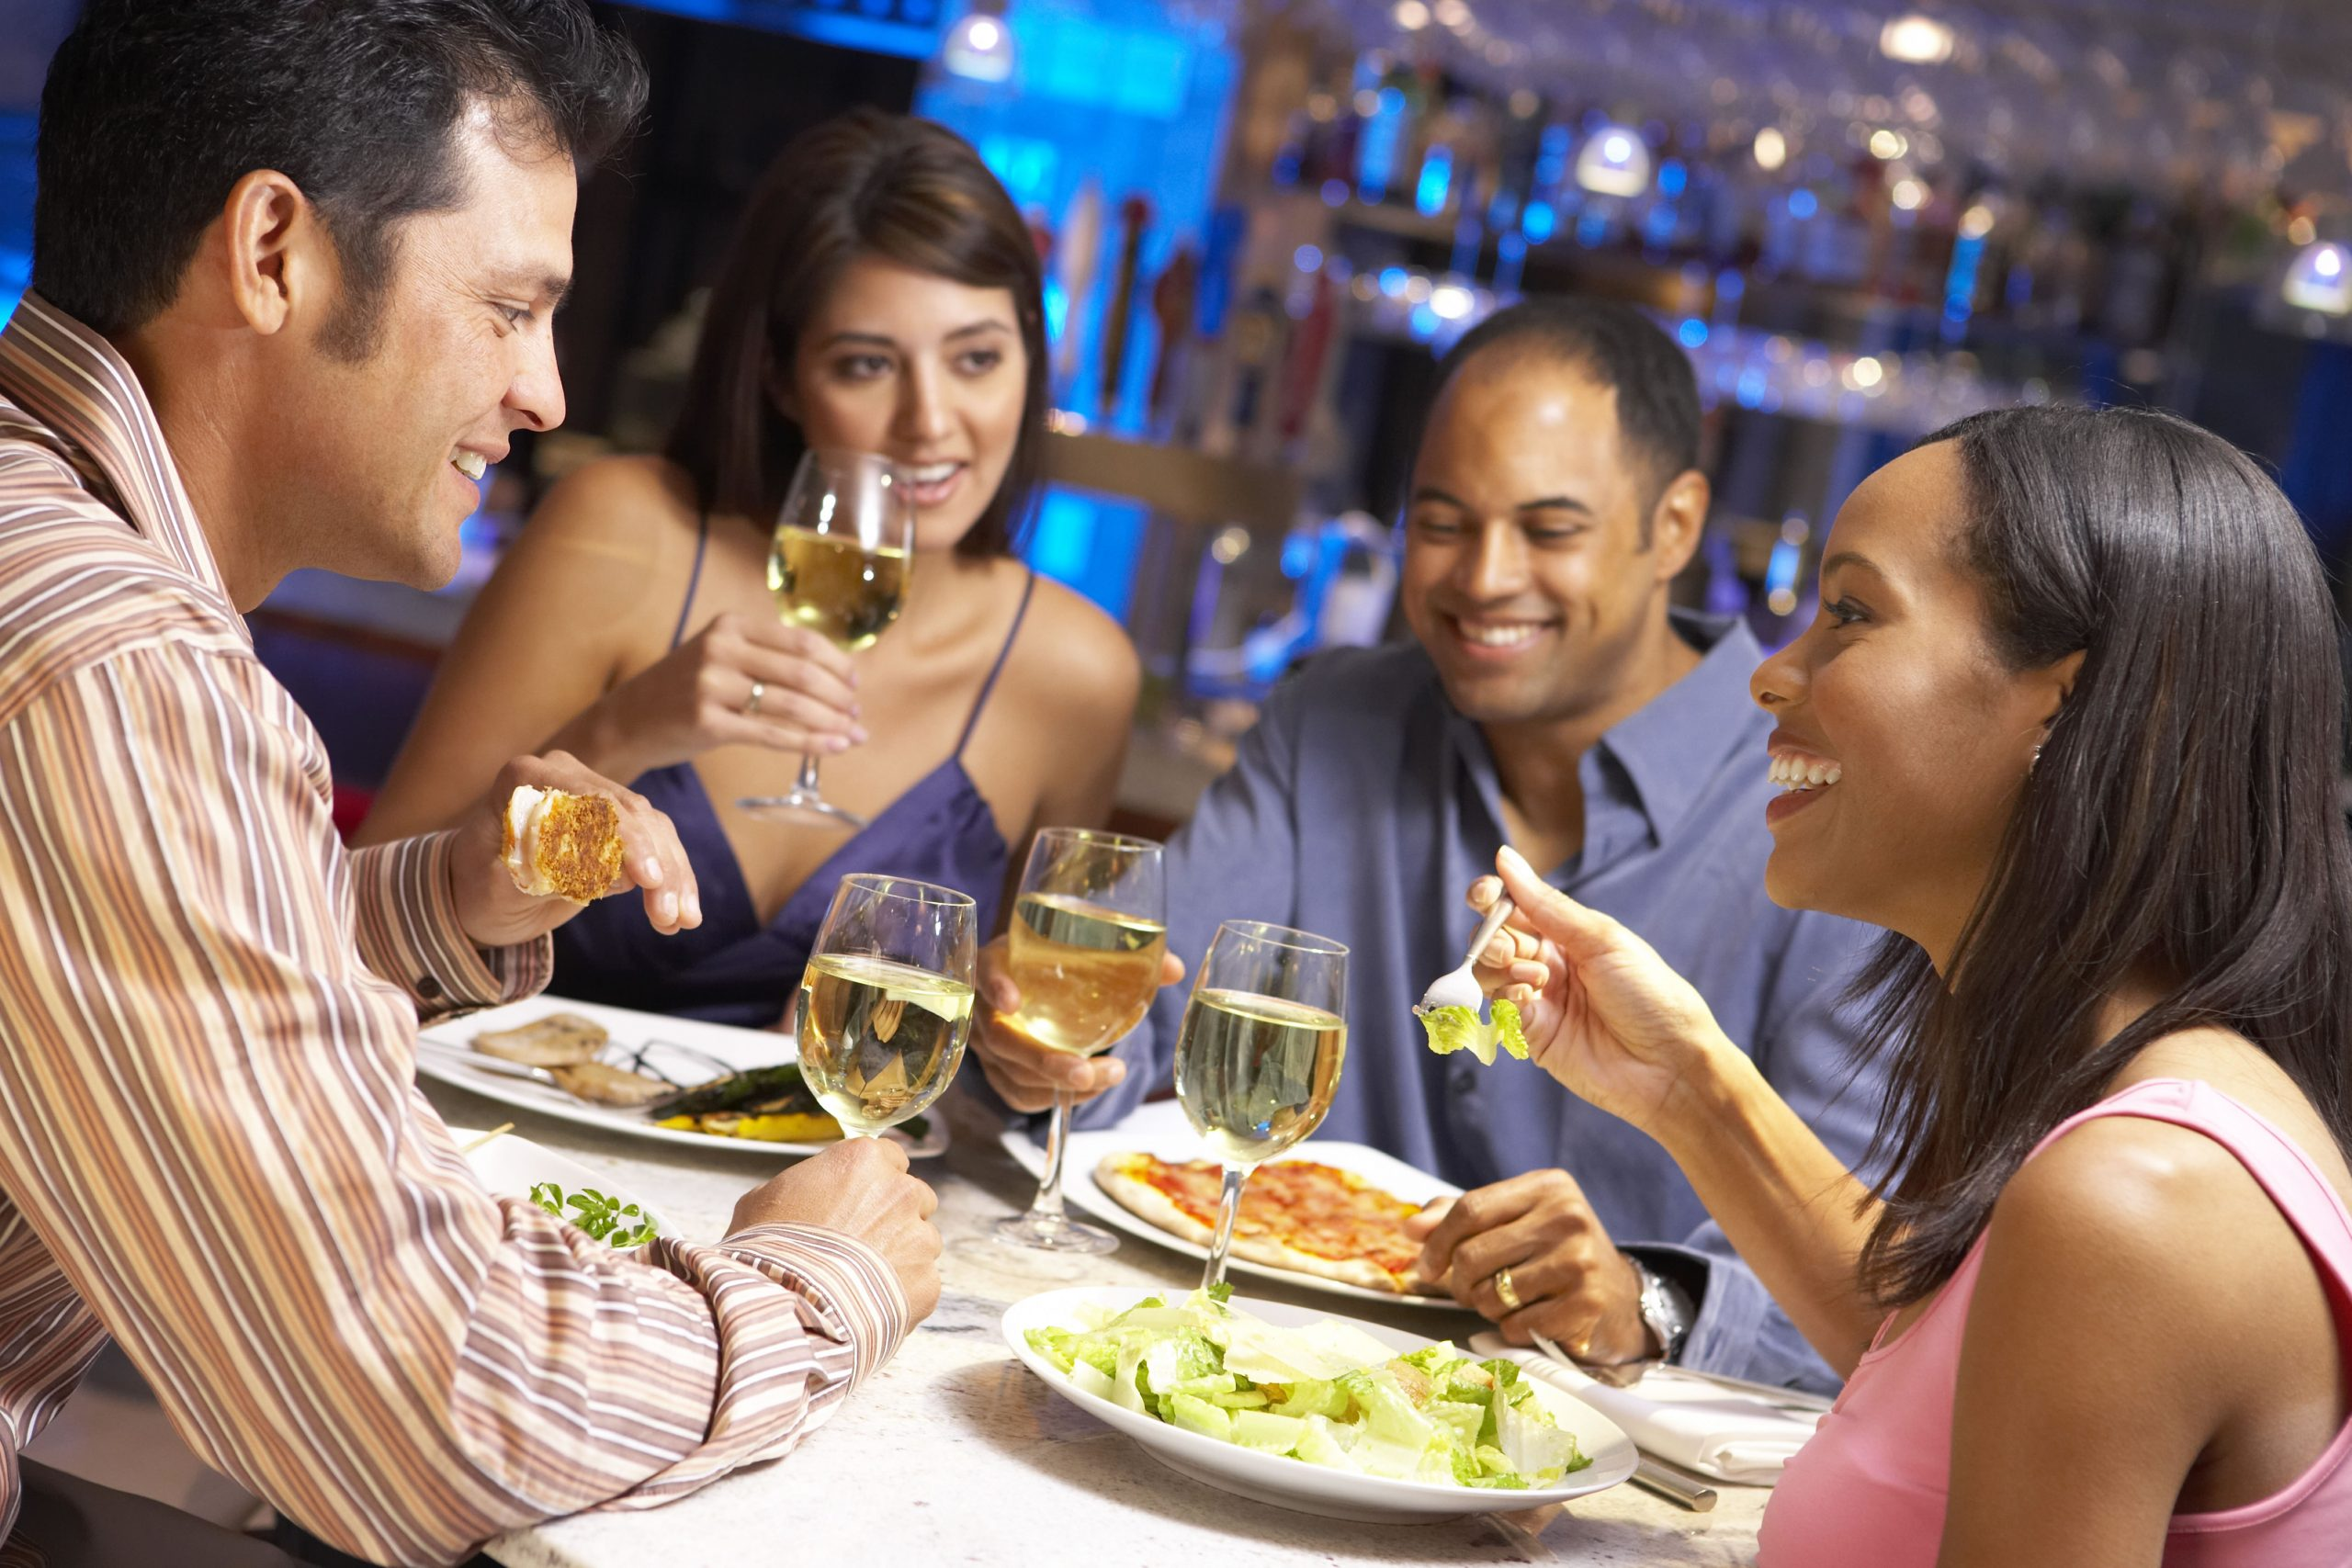 Two couples enjoying dinner and wine together at a restaurant.